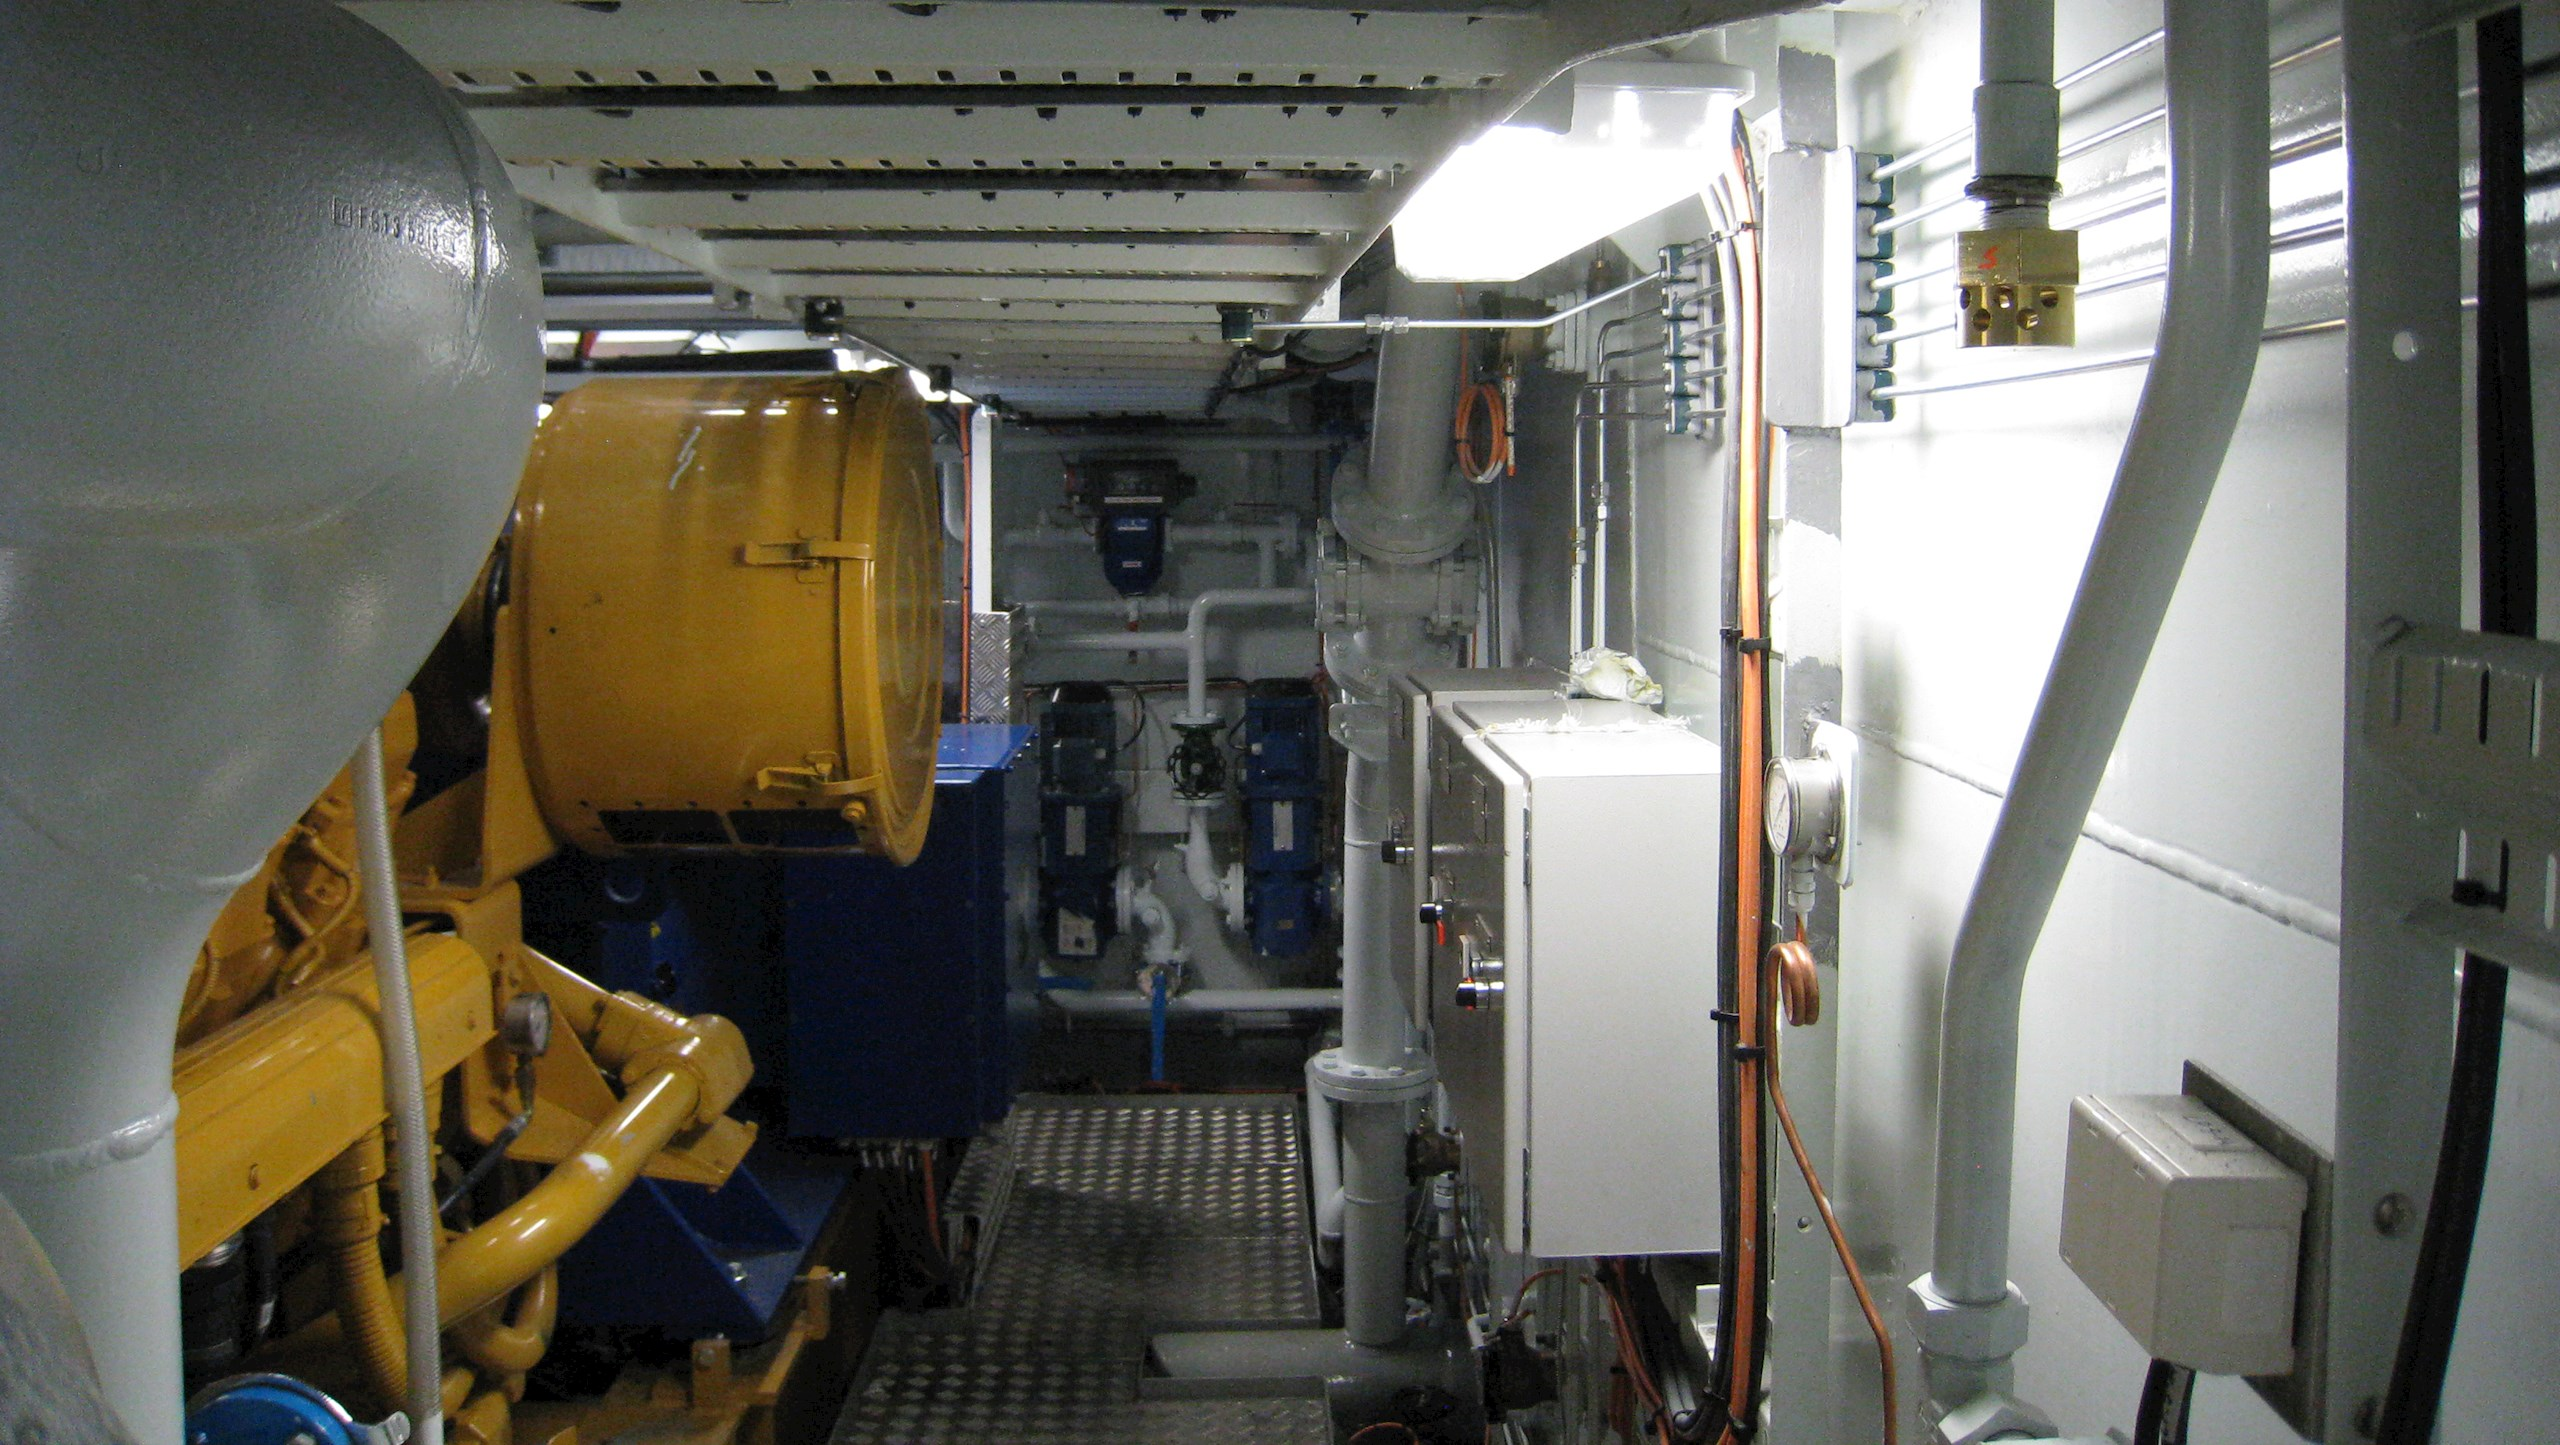 Unitor 1230_nozzle_in_auxiliary_engine_room.JPG